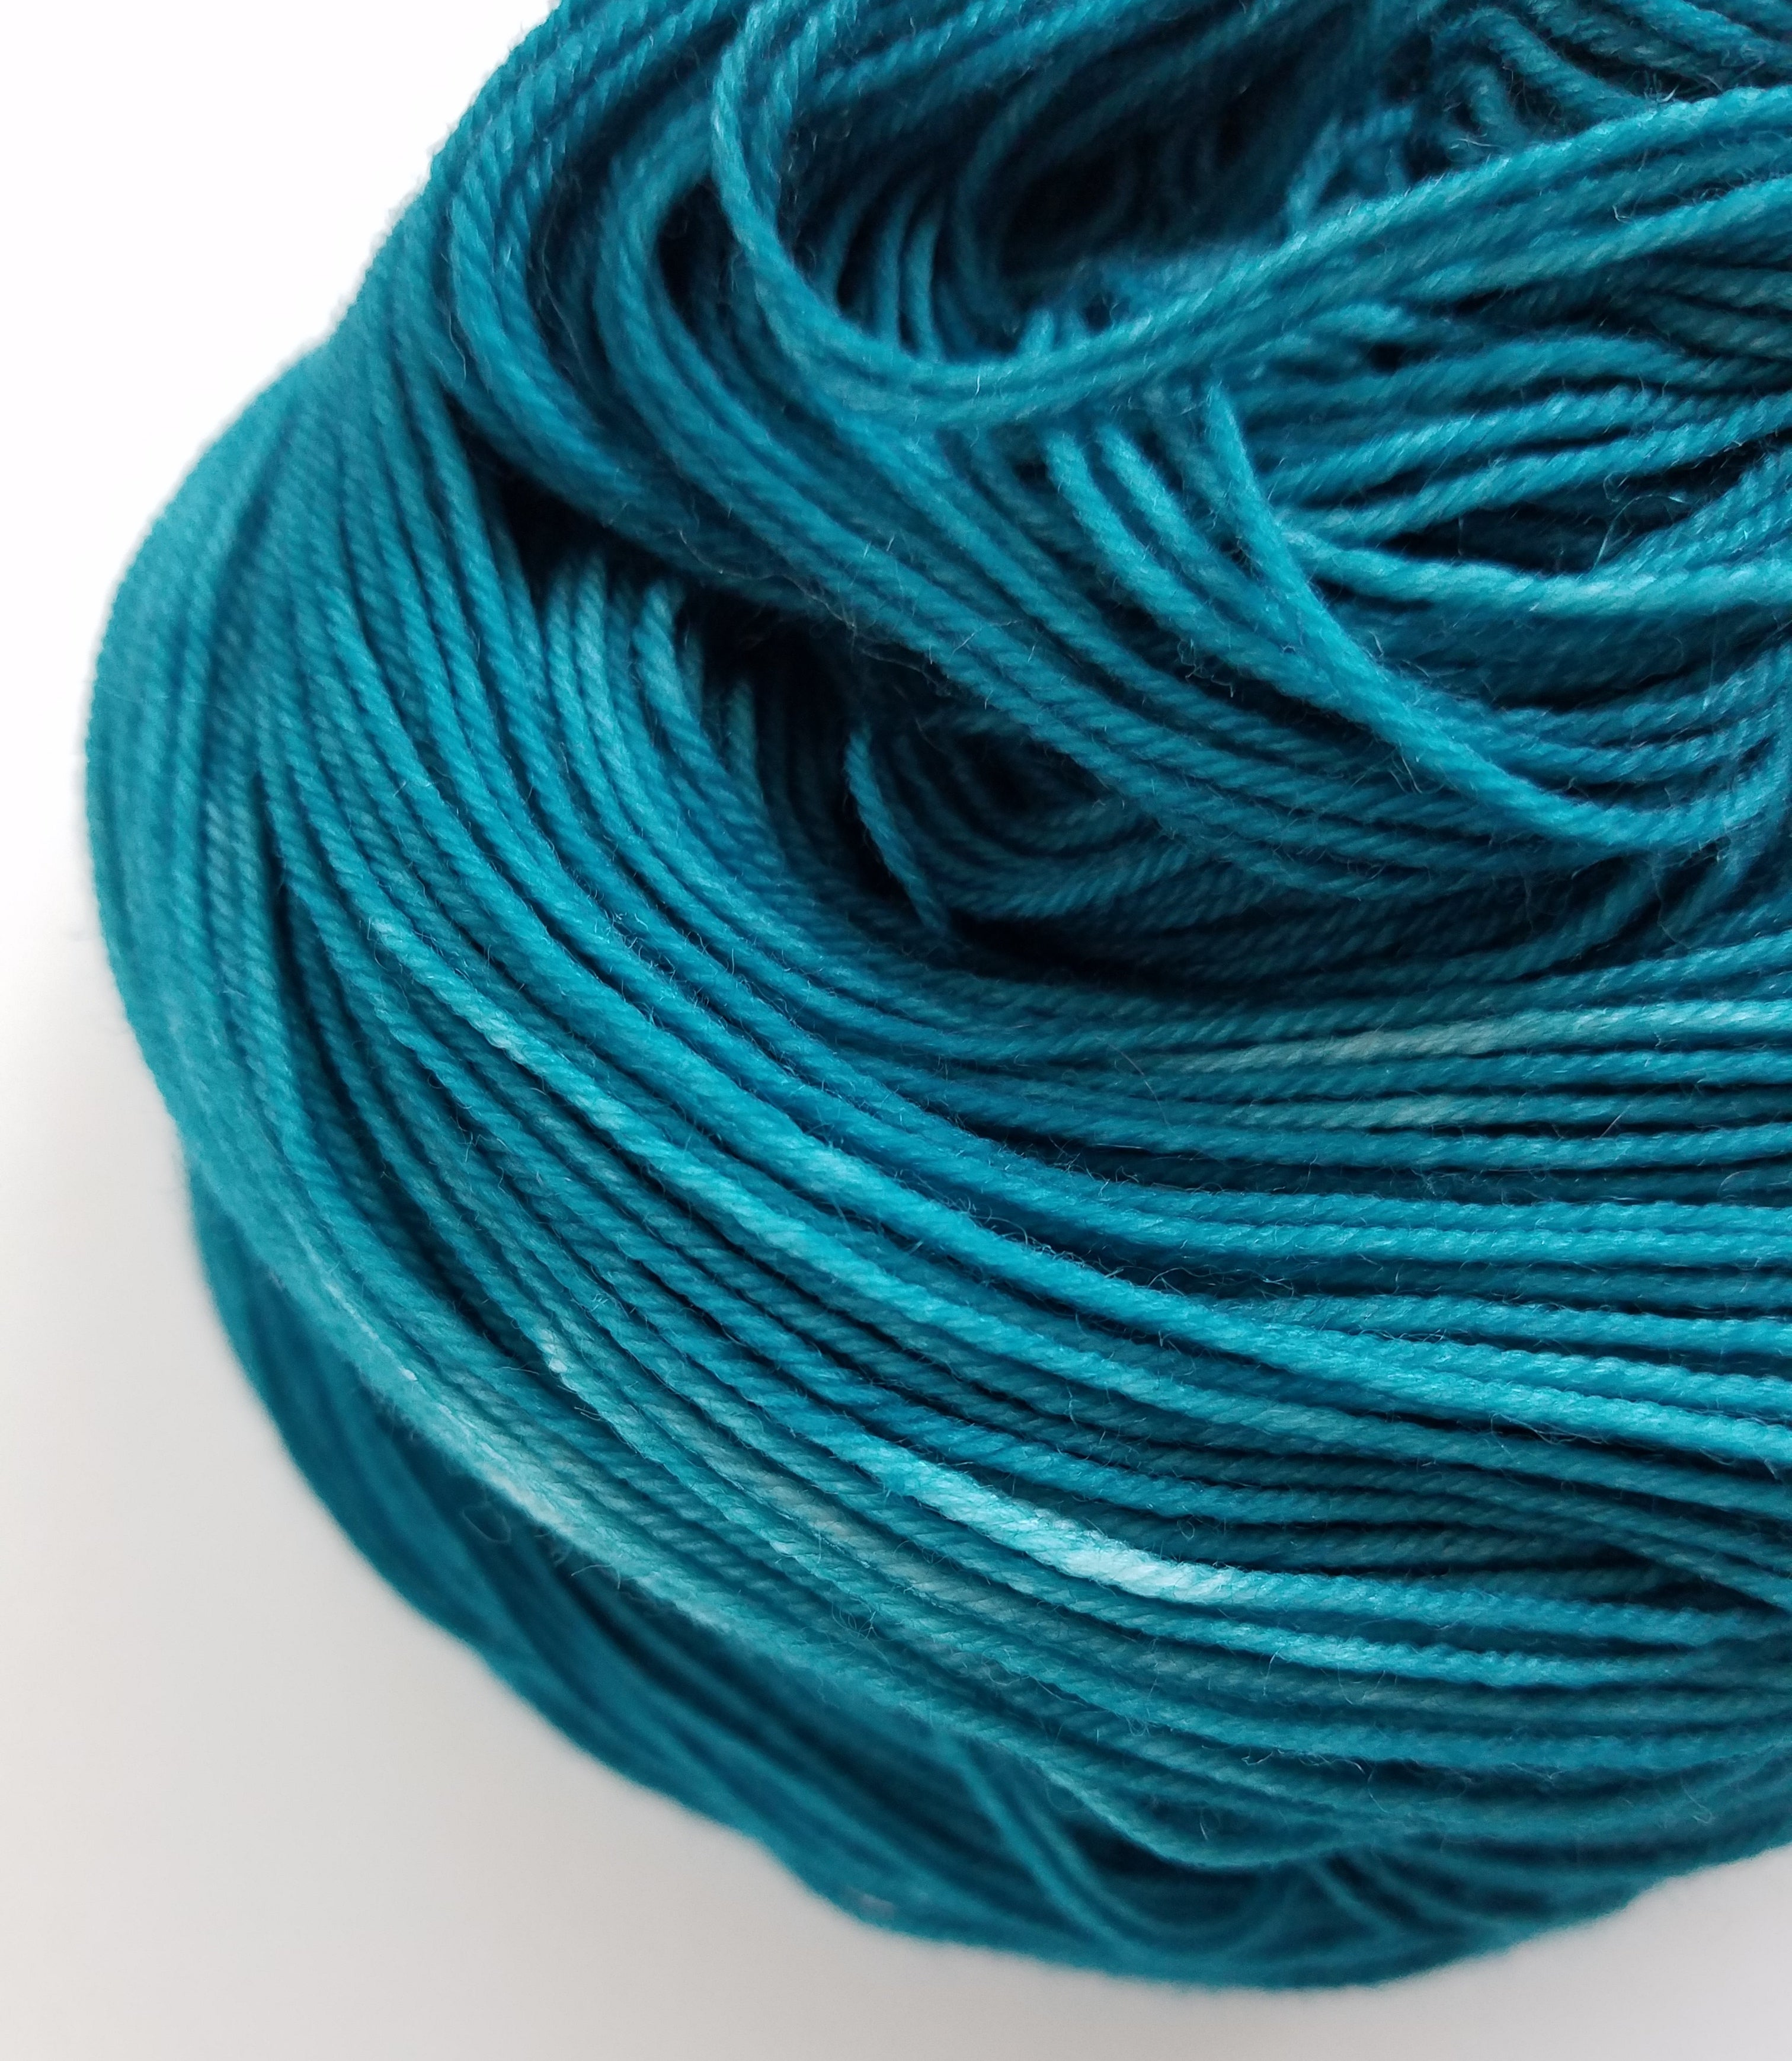 Teal Hand Dyed Yarn Semi Solid